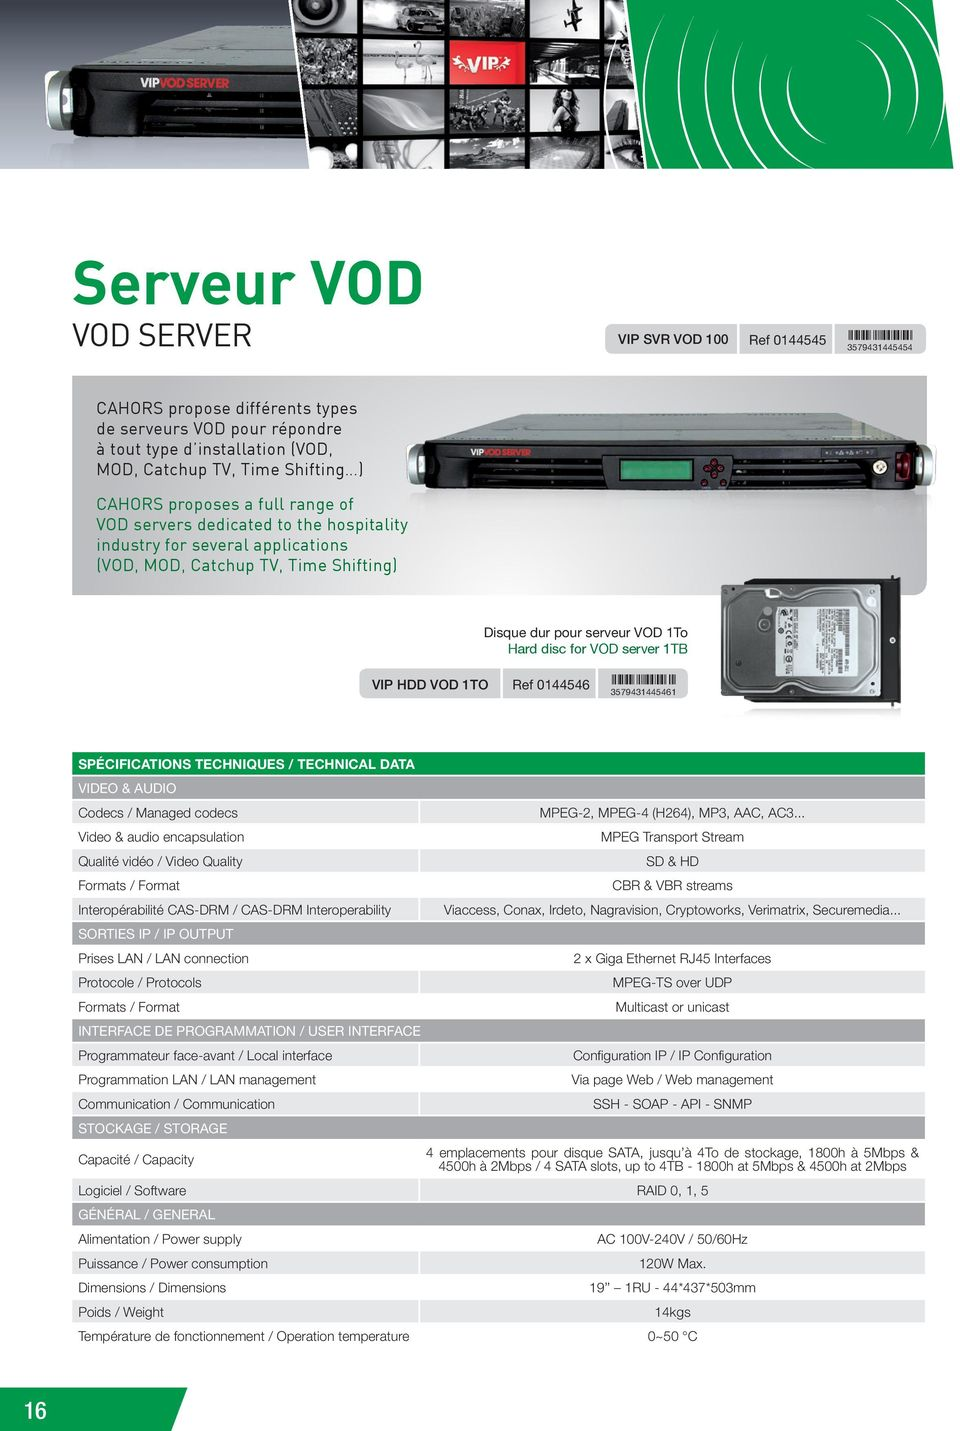 1To Hard disc for VOD server 1TB Ref 0144546 &:FHTONB=YYZY[V: 3579431445461 SPÉCIFICATIONS TECHNIQUES / TECHNICAL DATA VIDEO & AUDIO Codecs / Managed codecs Video & audio encapsulation Qualité vidéo